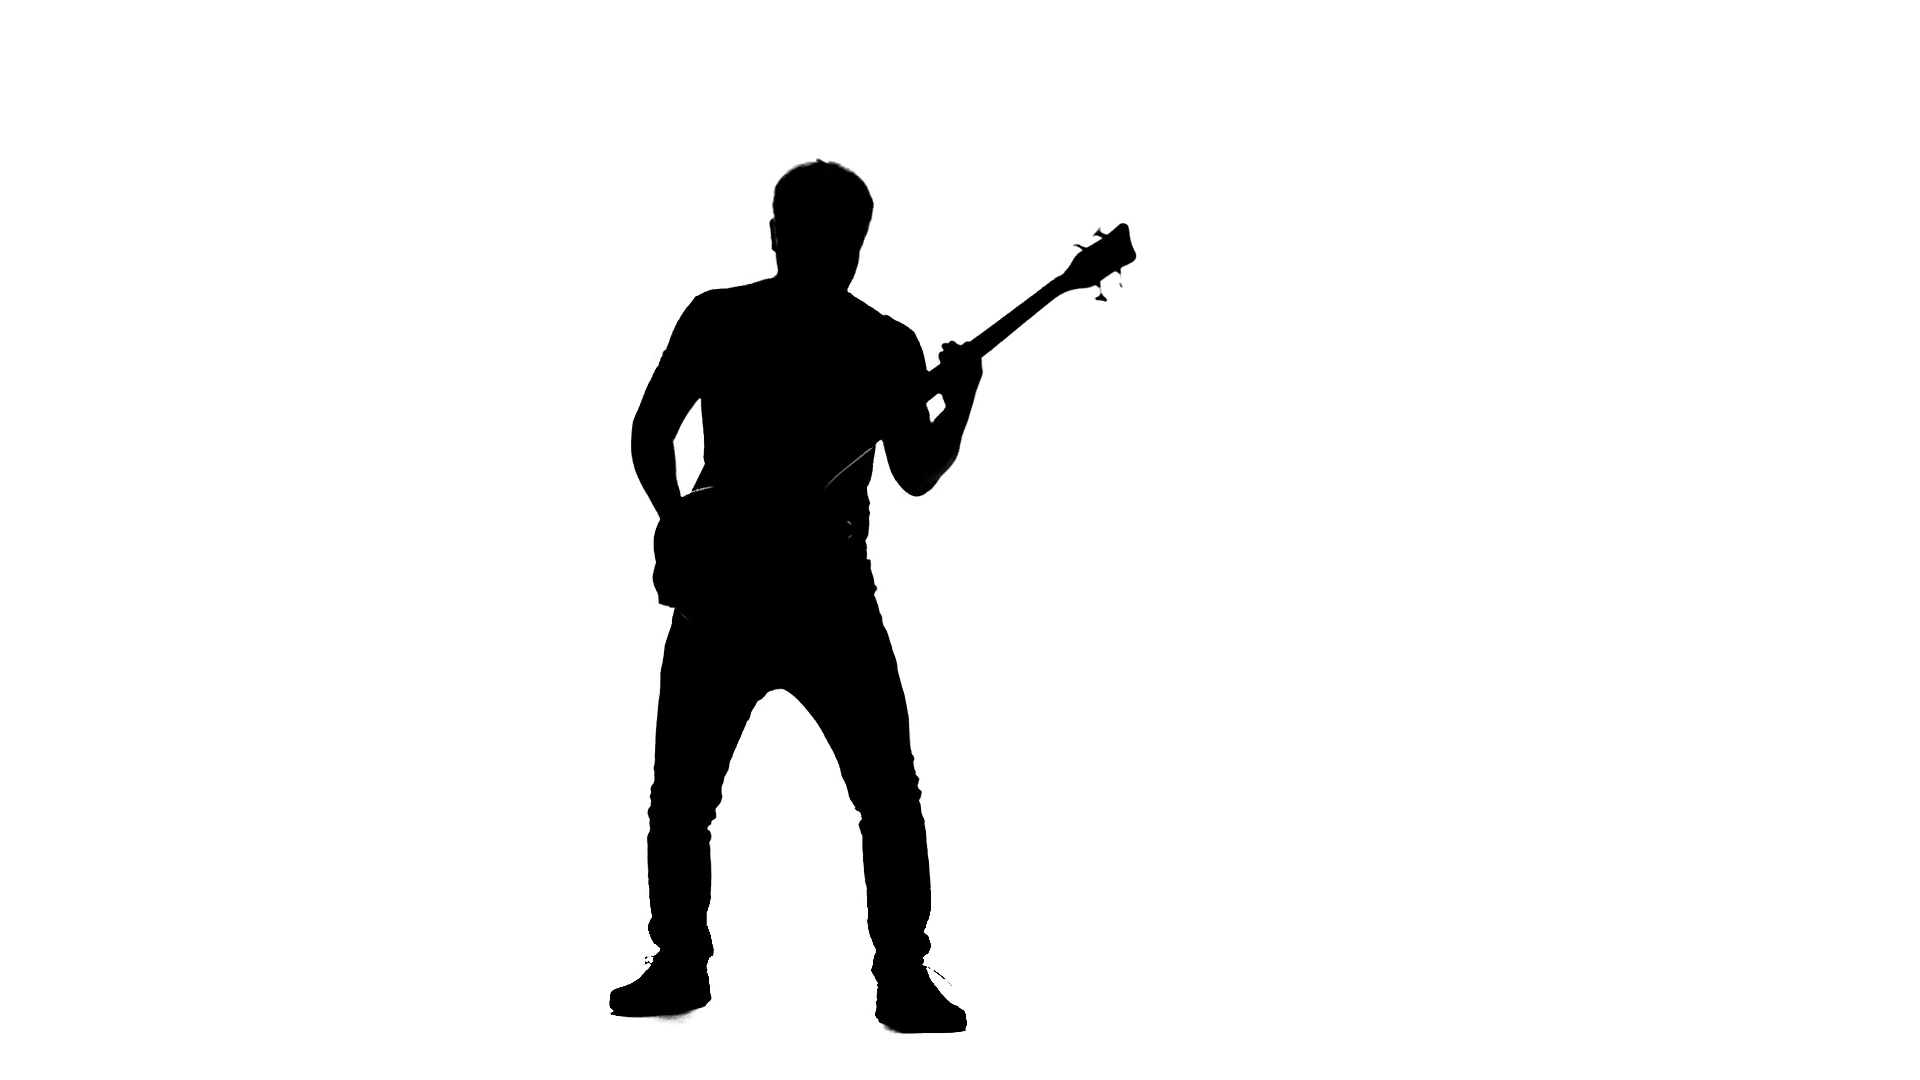 1920x1080 Guitarist Kneel While Playing A Musical Instrument. Silhouette